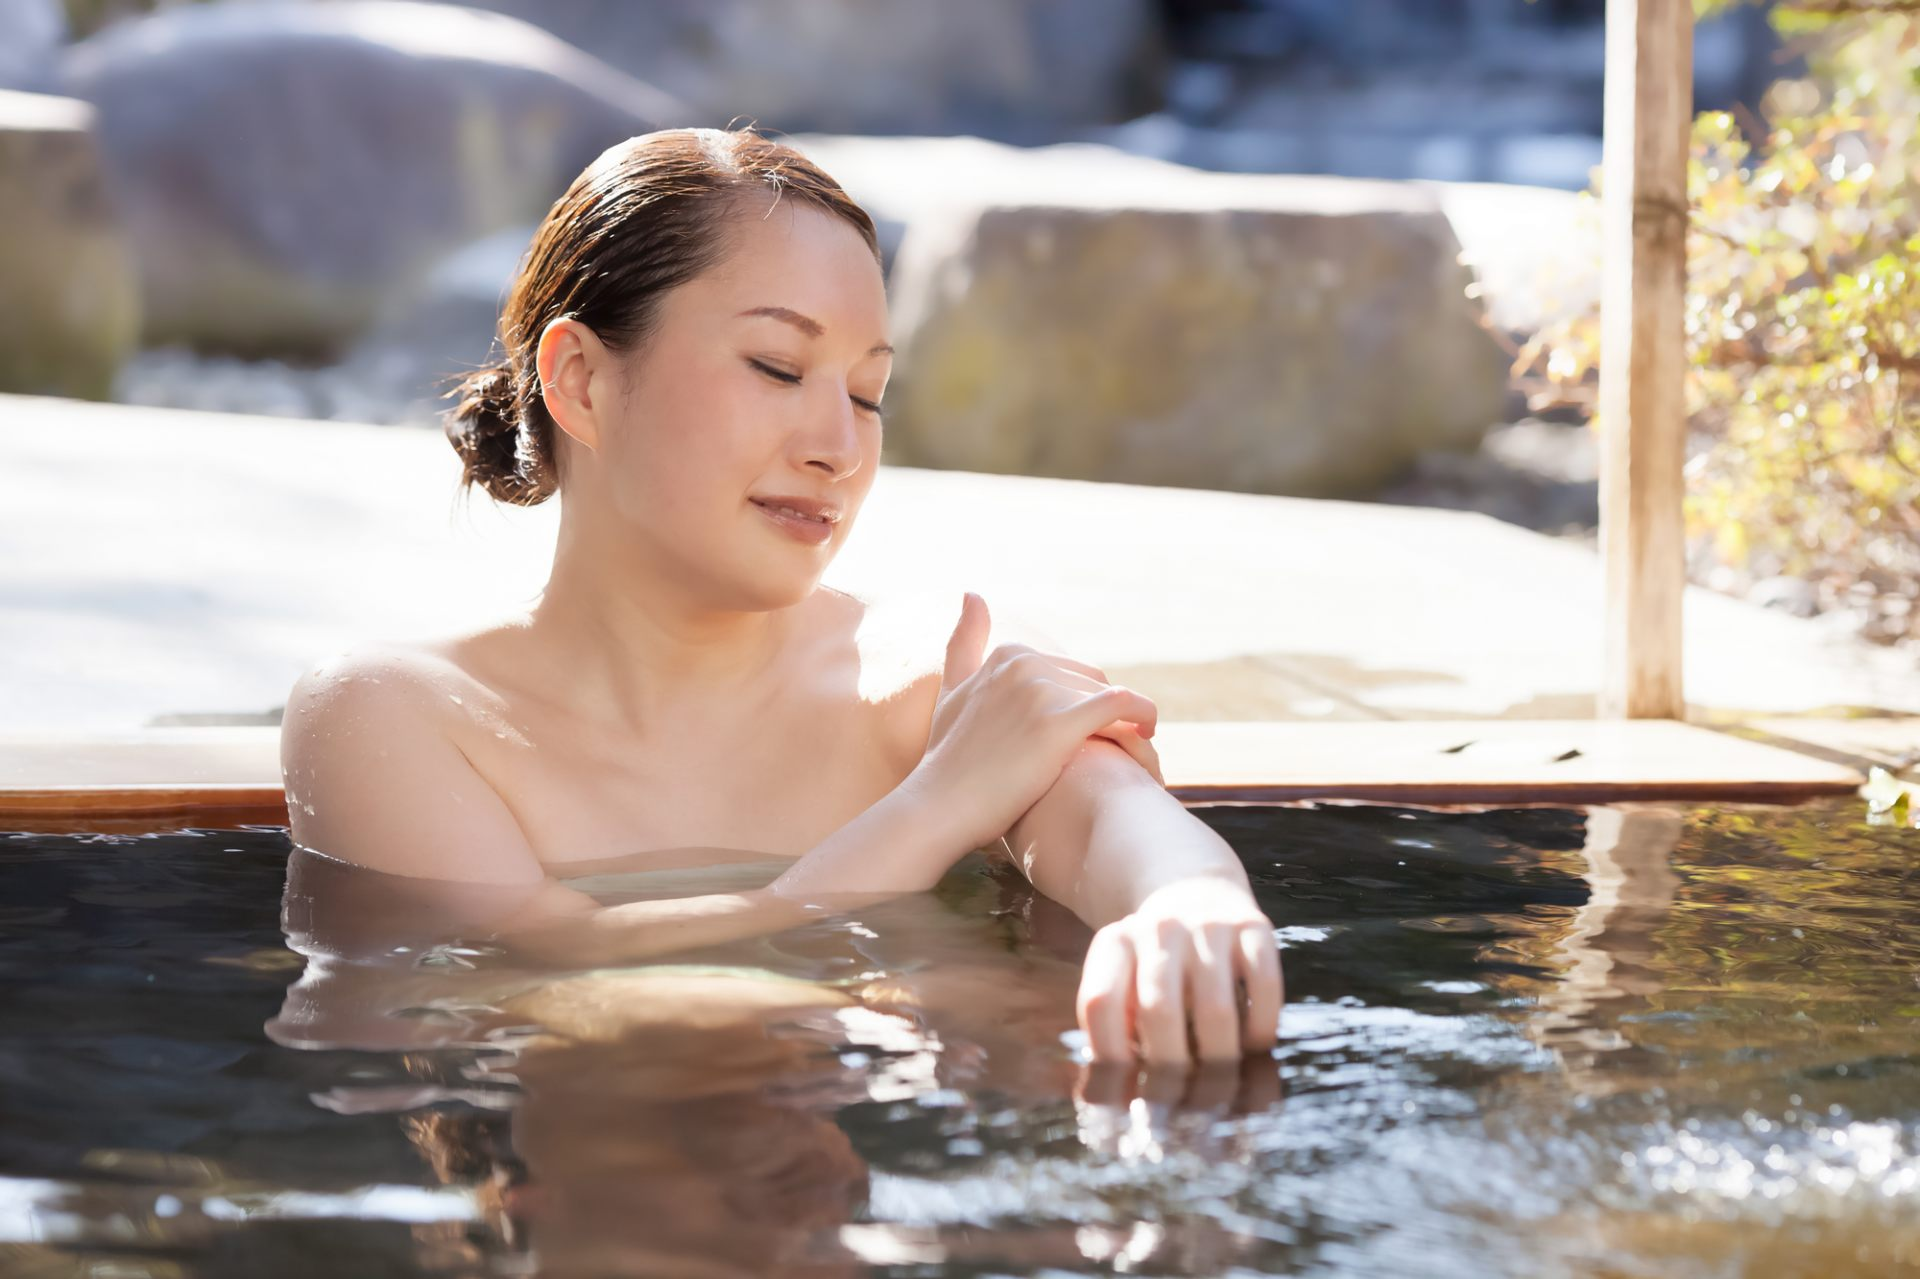 Relieve your fatigue and soften your skin in the hot springs